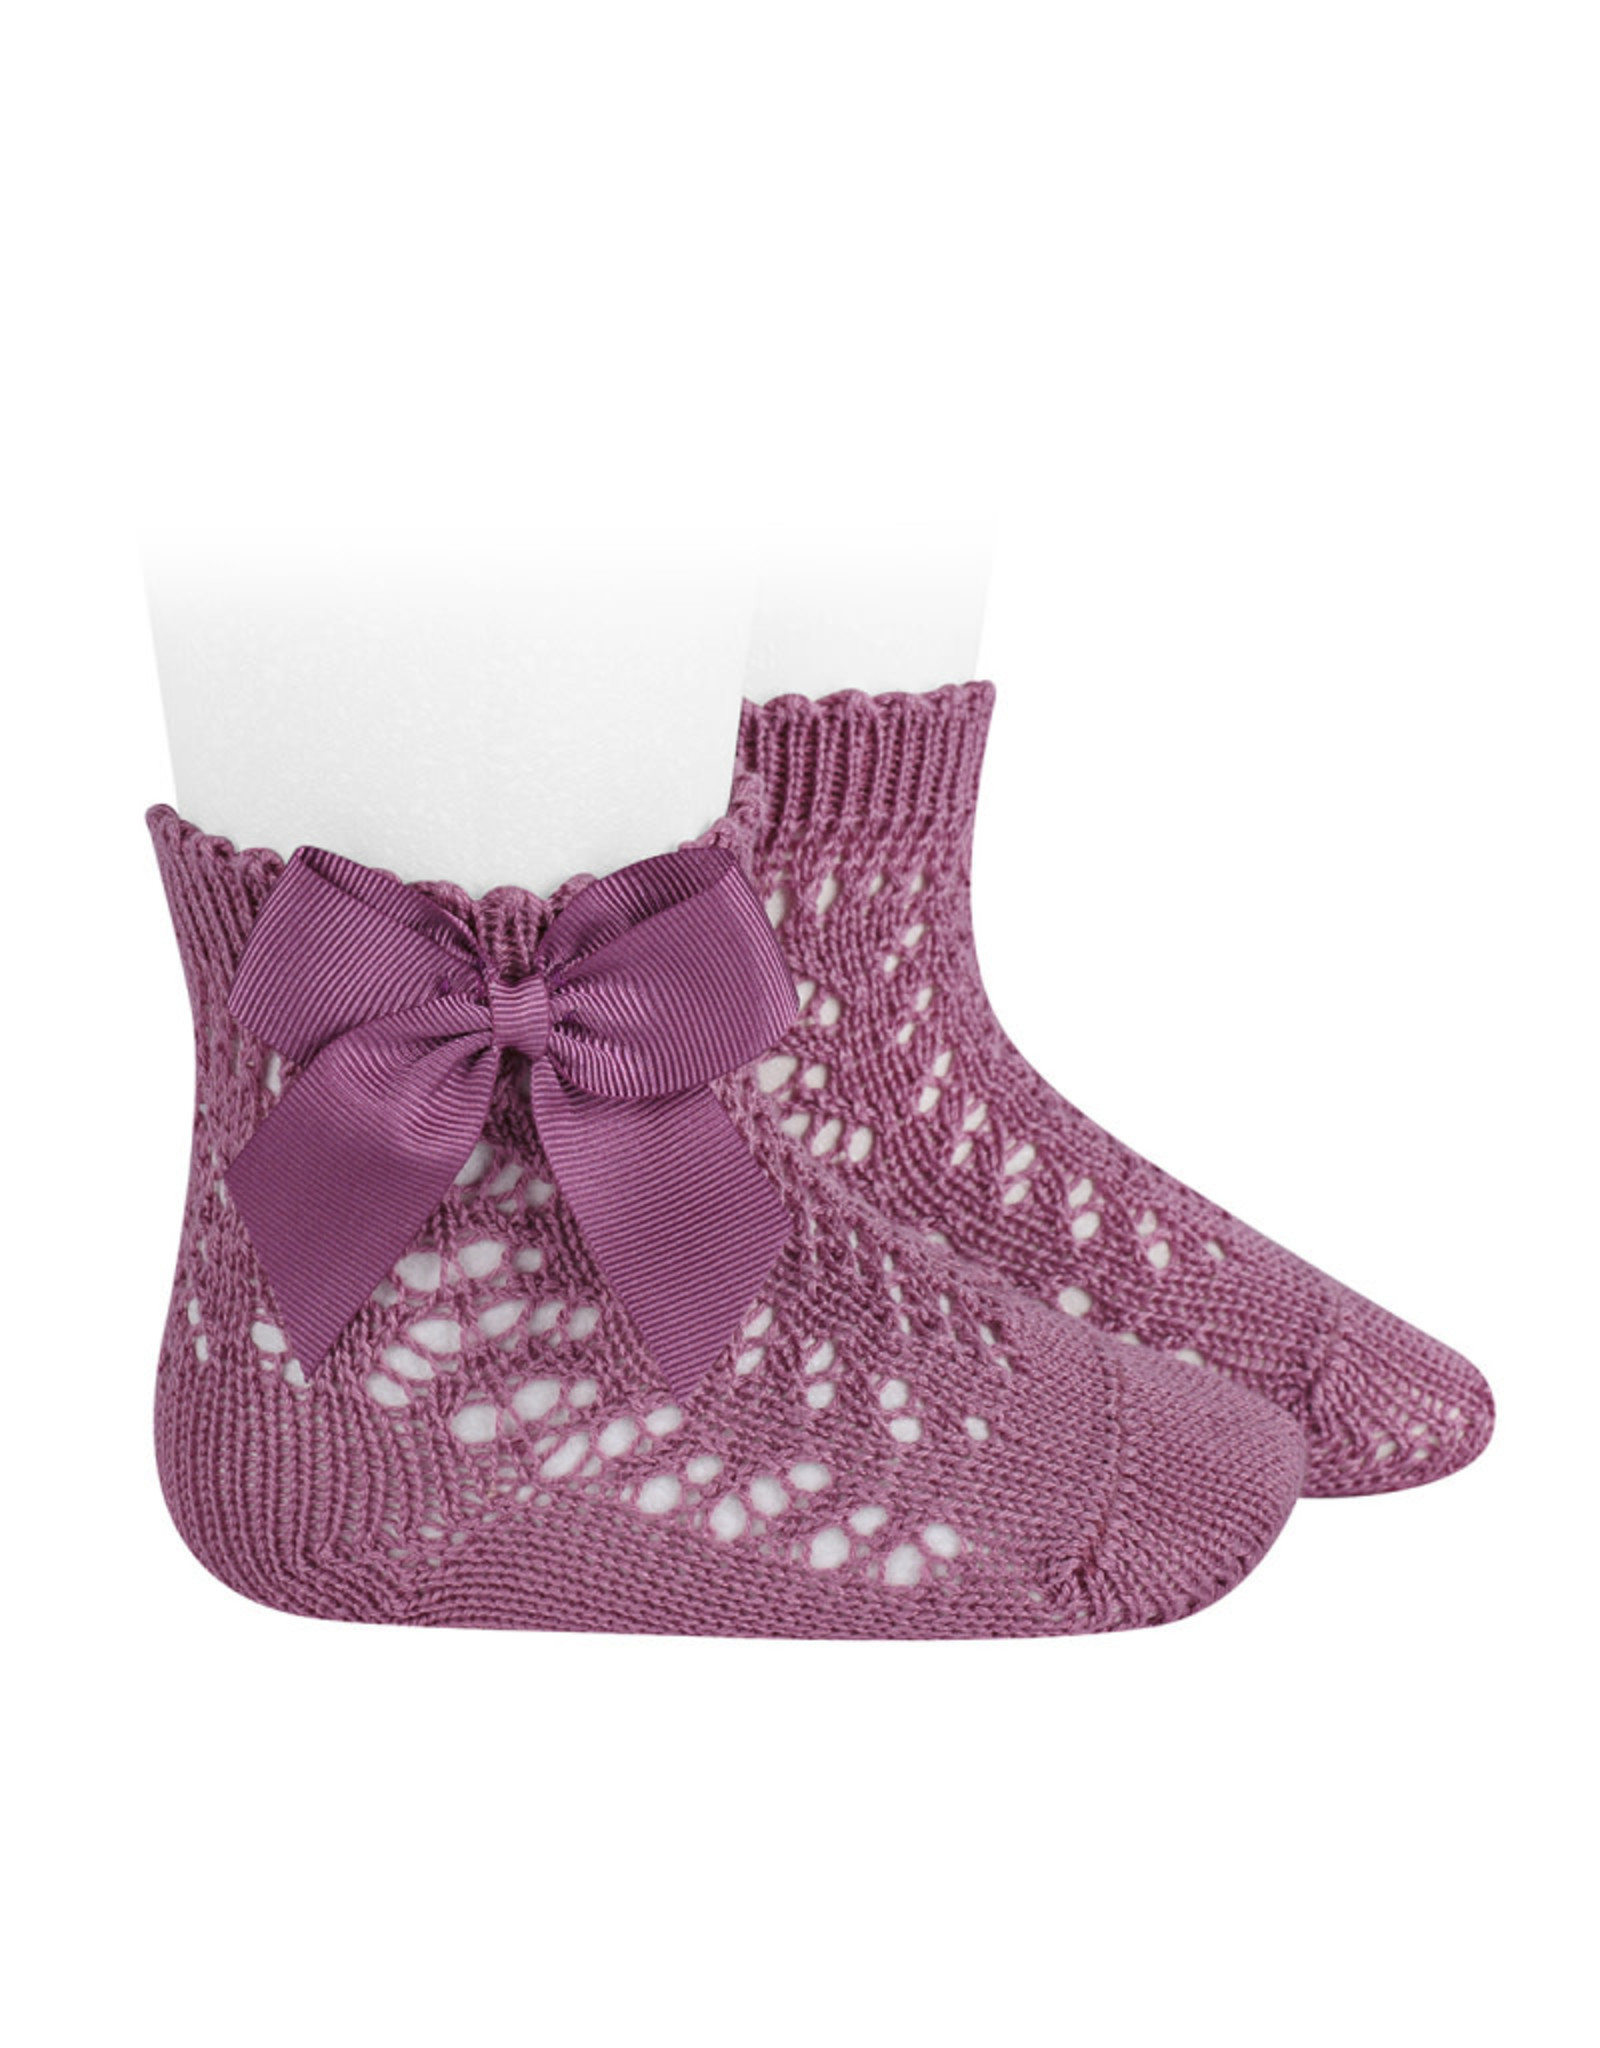 CONDOR Cassis Openwork Short Socks with Bow